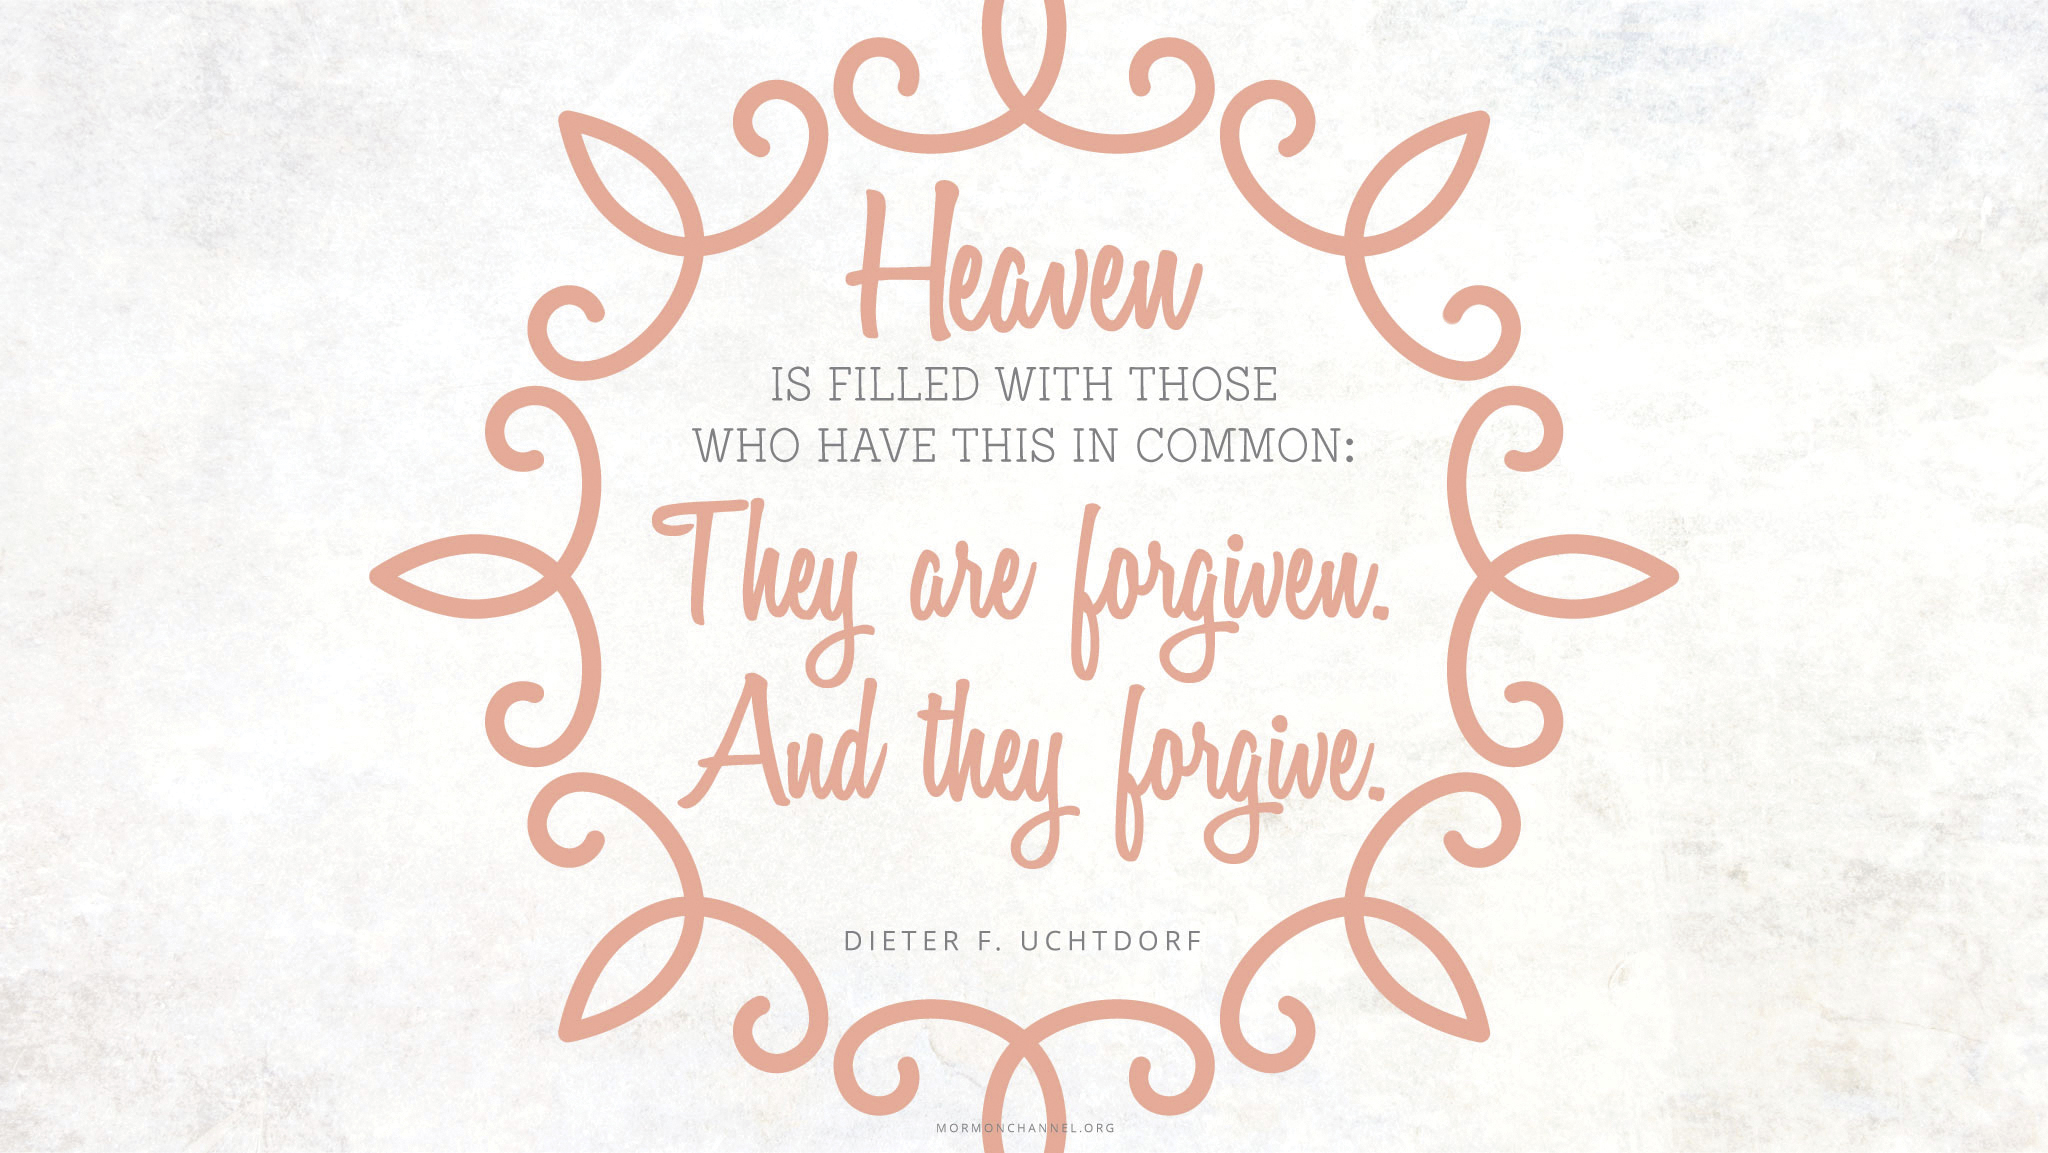 """""""Heaven is filled with those who have this in common: They are forgiven. And they forgive.""""—President Dieter F. Uchtdorf, """"The Merciful Obtain Mercy"""""""